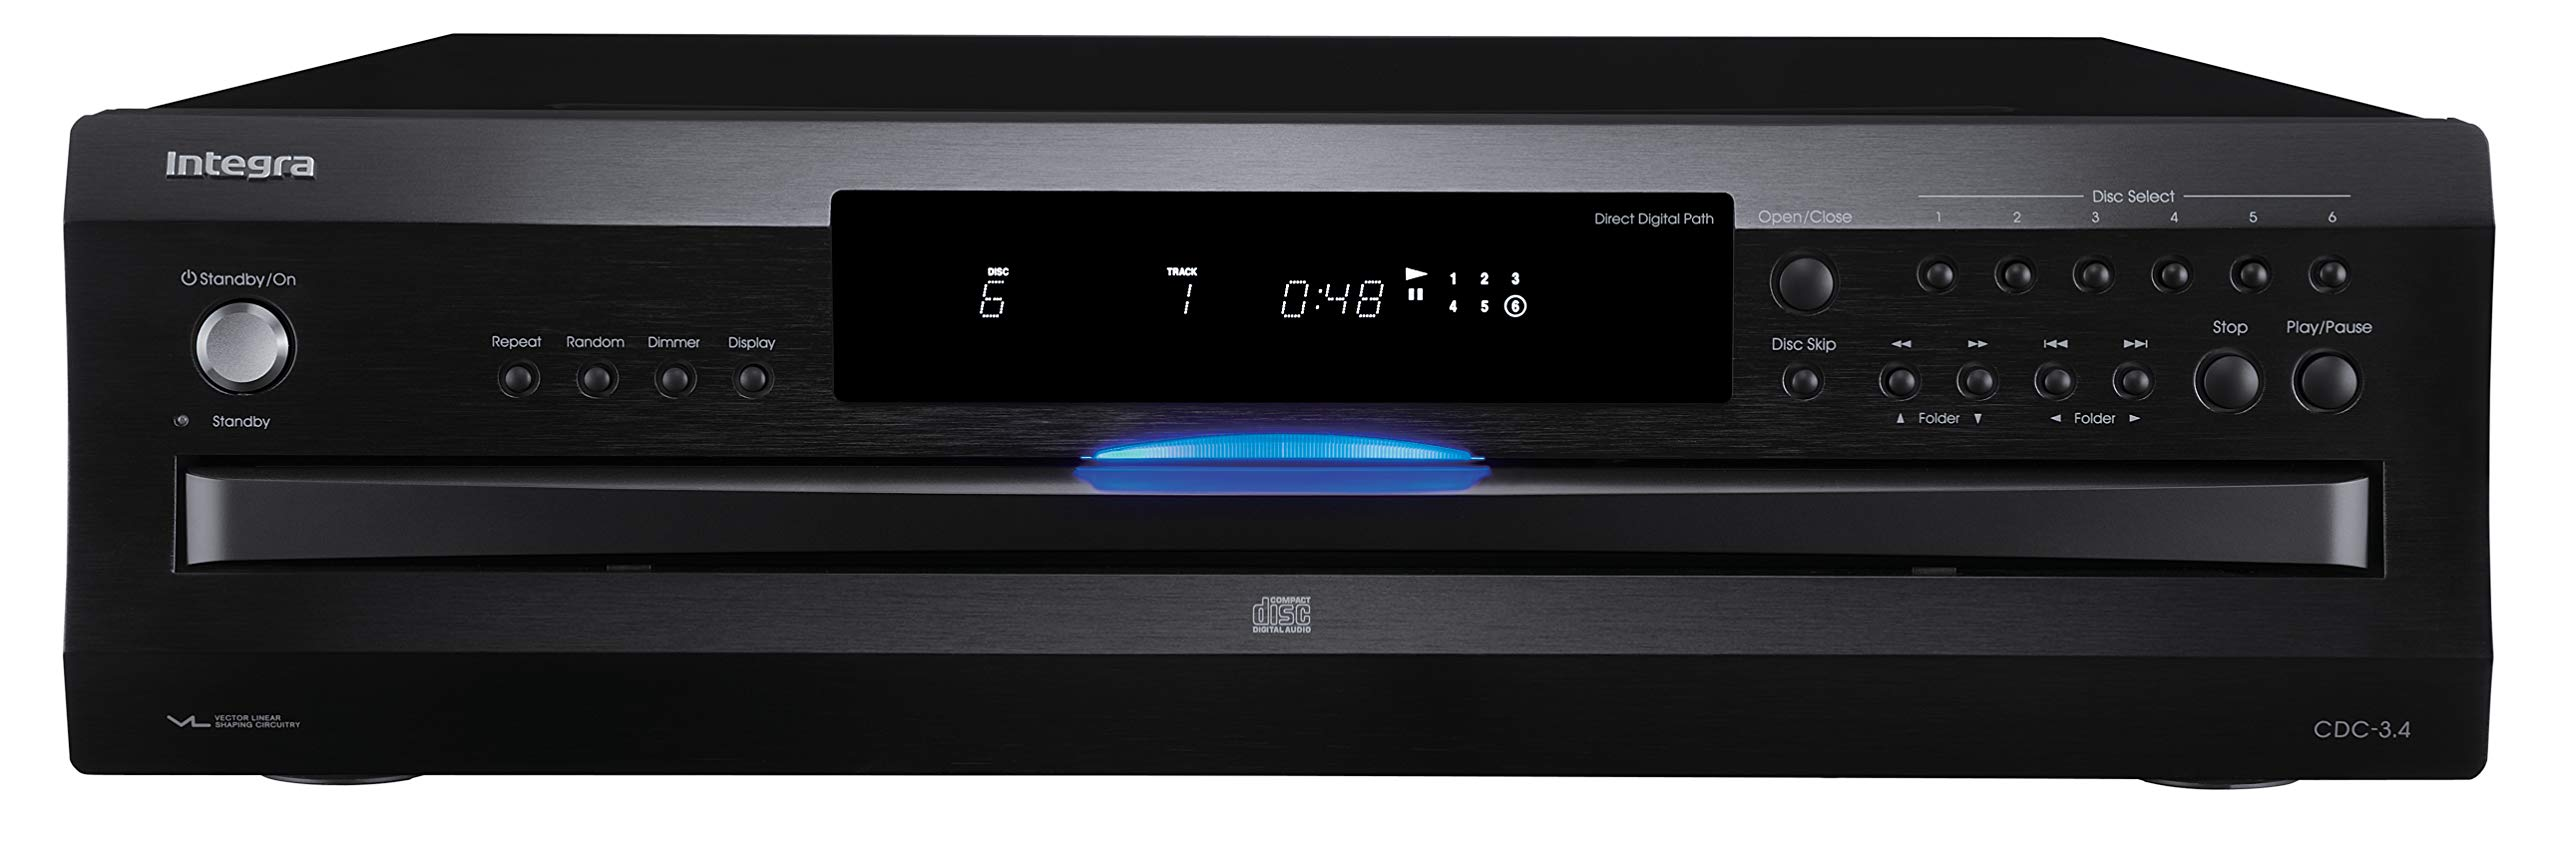 Integra Premium 6 Disc CD Carousel Changer Black (CDC-3.4) by Integra